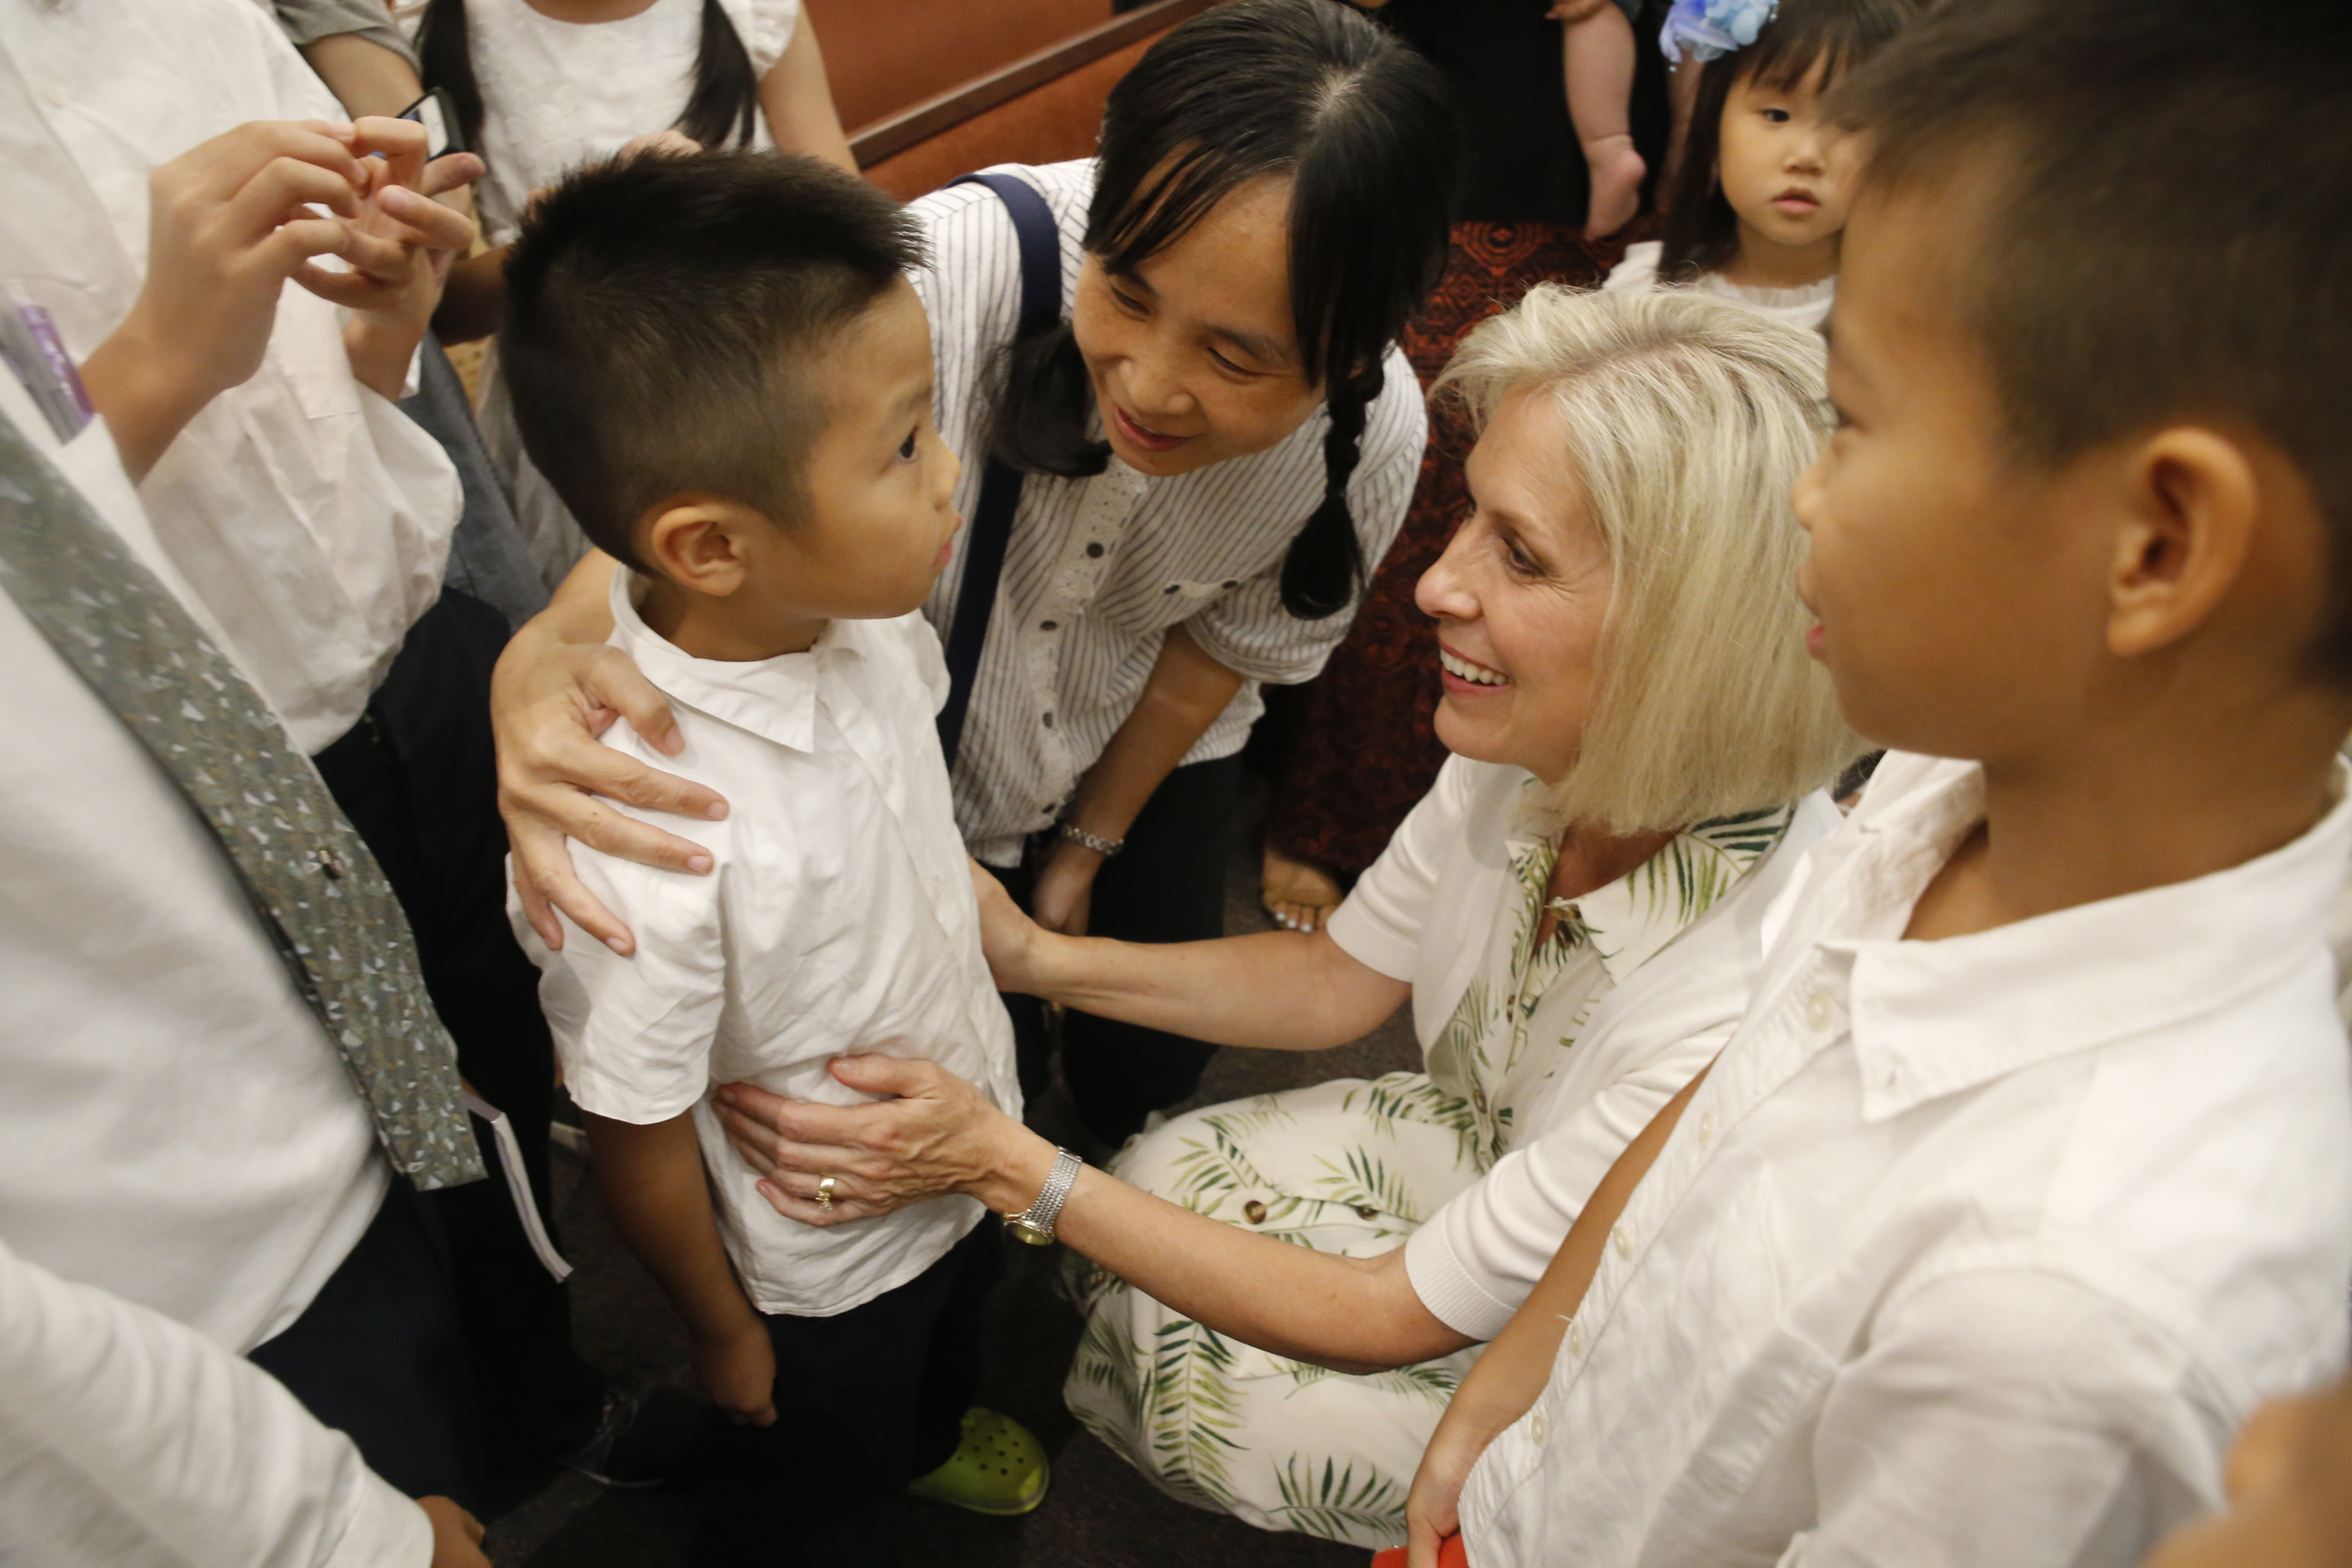 Sister Joy D. Jones, Primary general president, interacts with youth following a devotional in Taipei, Taiwan, during a visit to the Asia Area from Aug. 17 to 14, 2019.